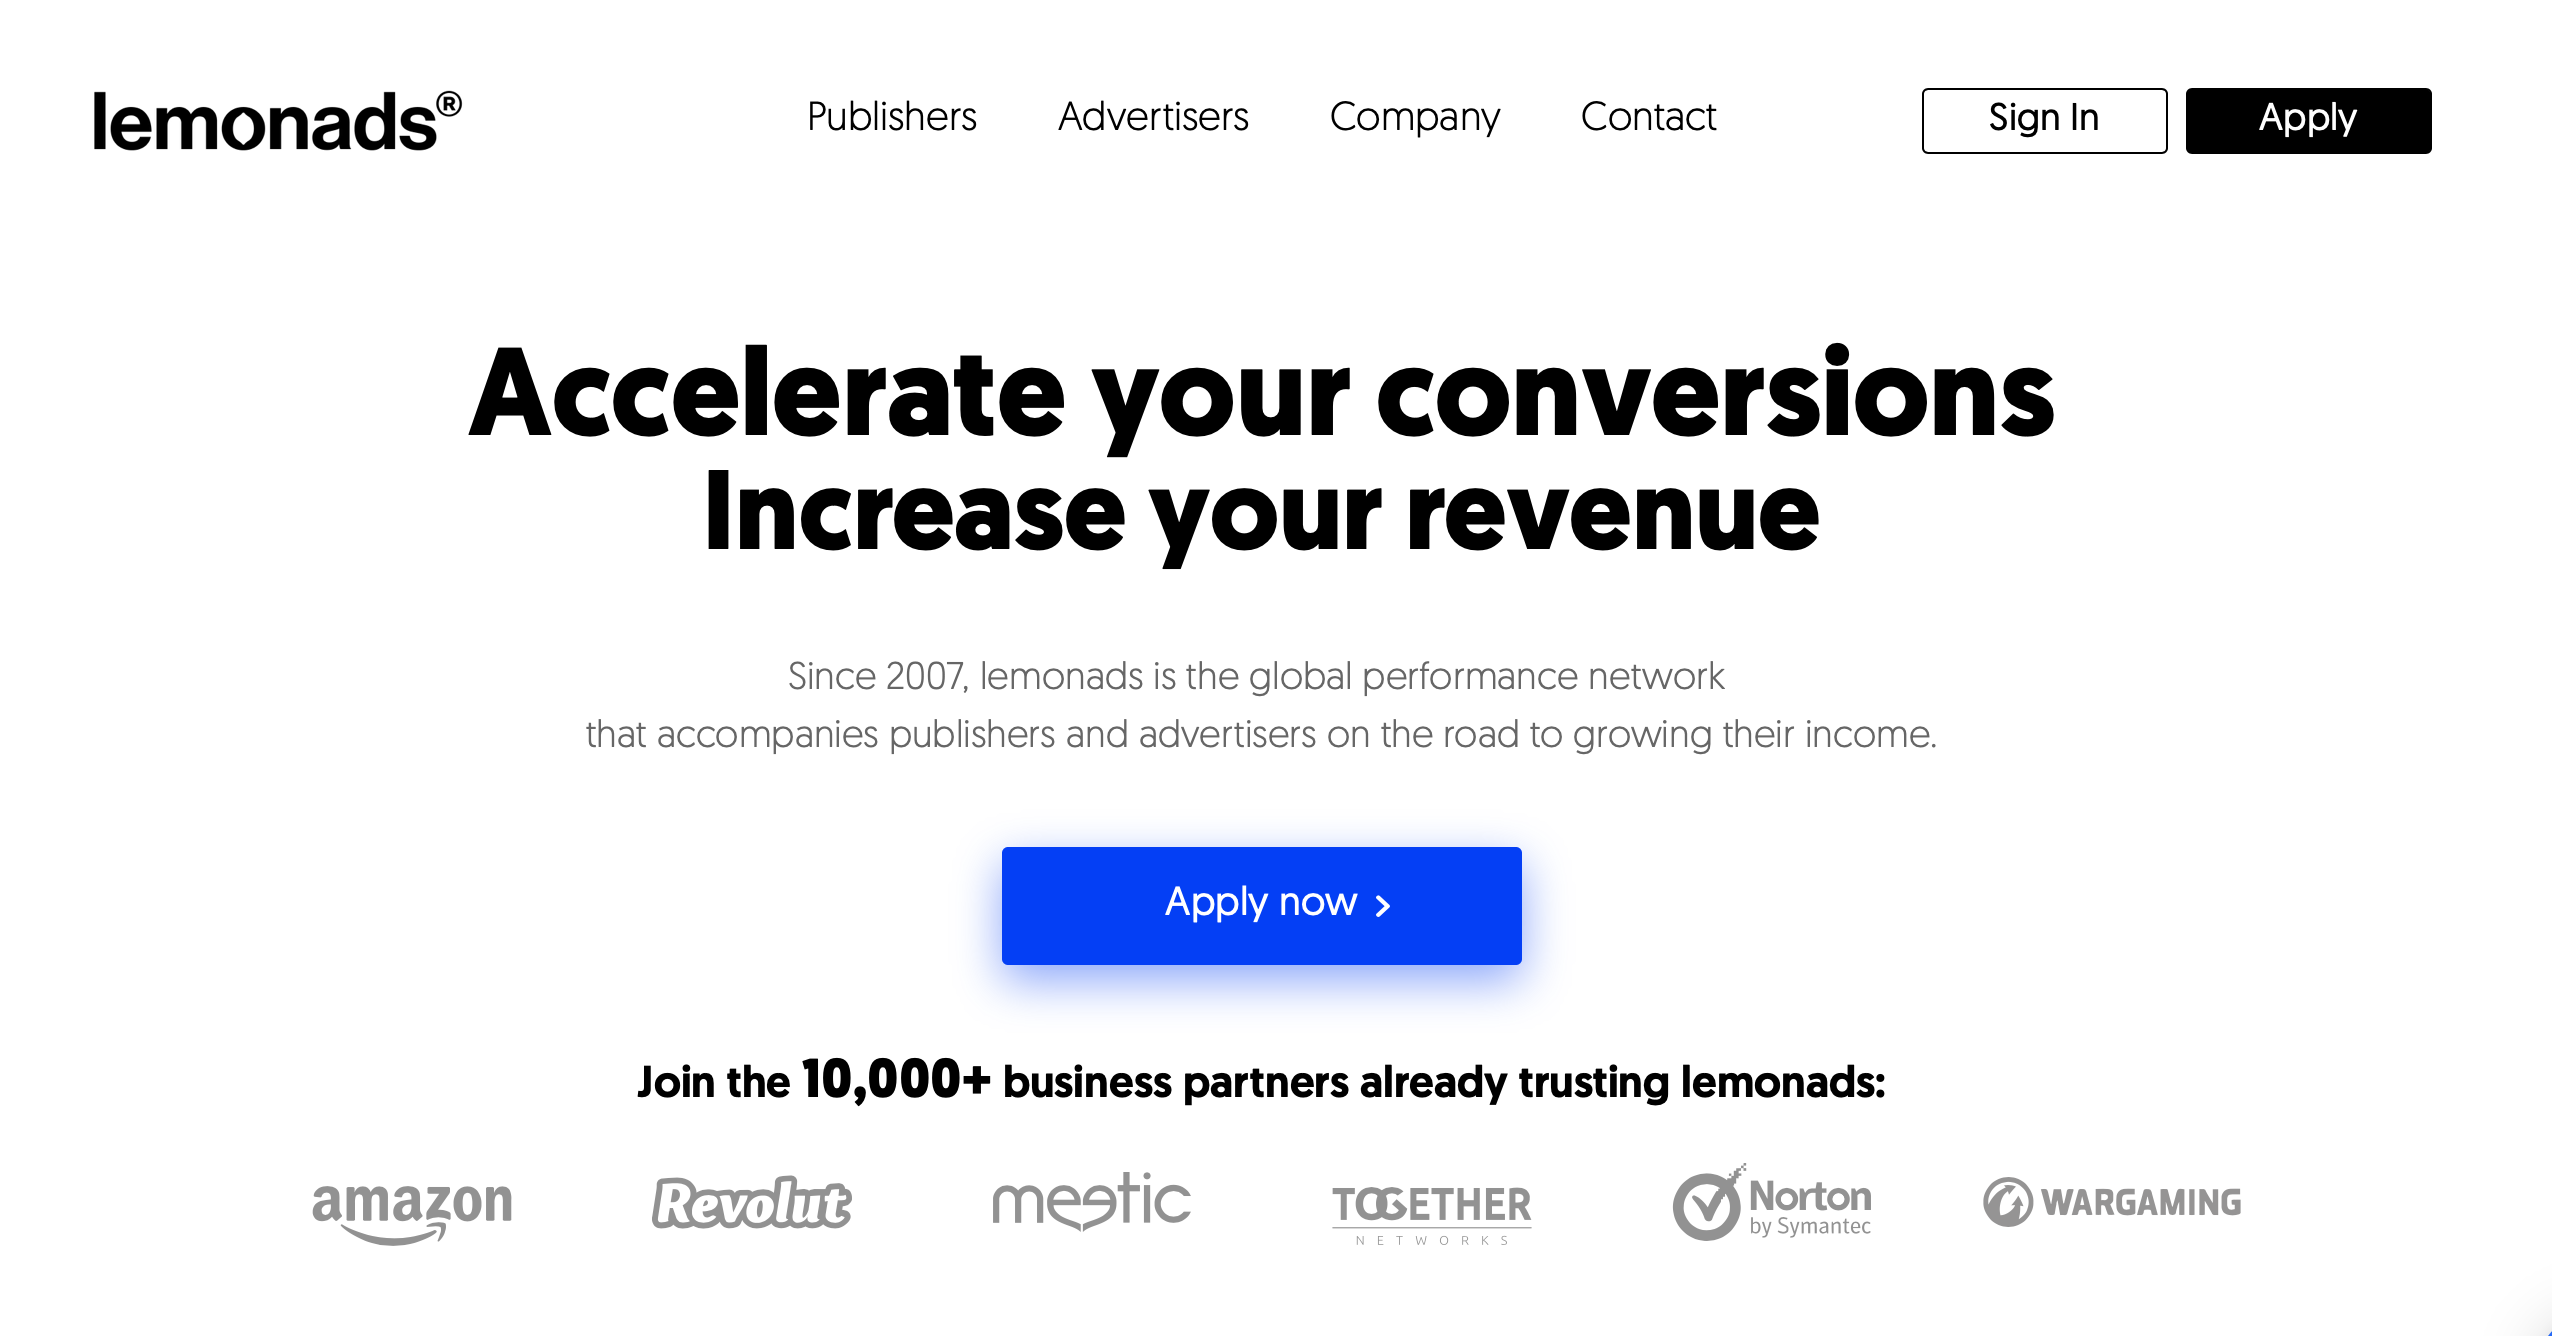 Accelerate your Conversions, Increase your Revenue with lemonads